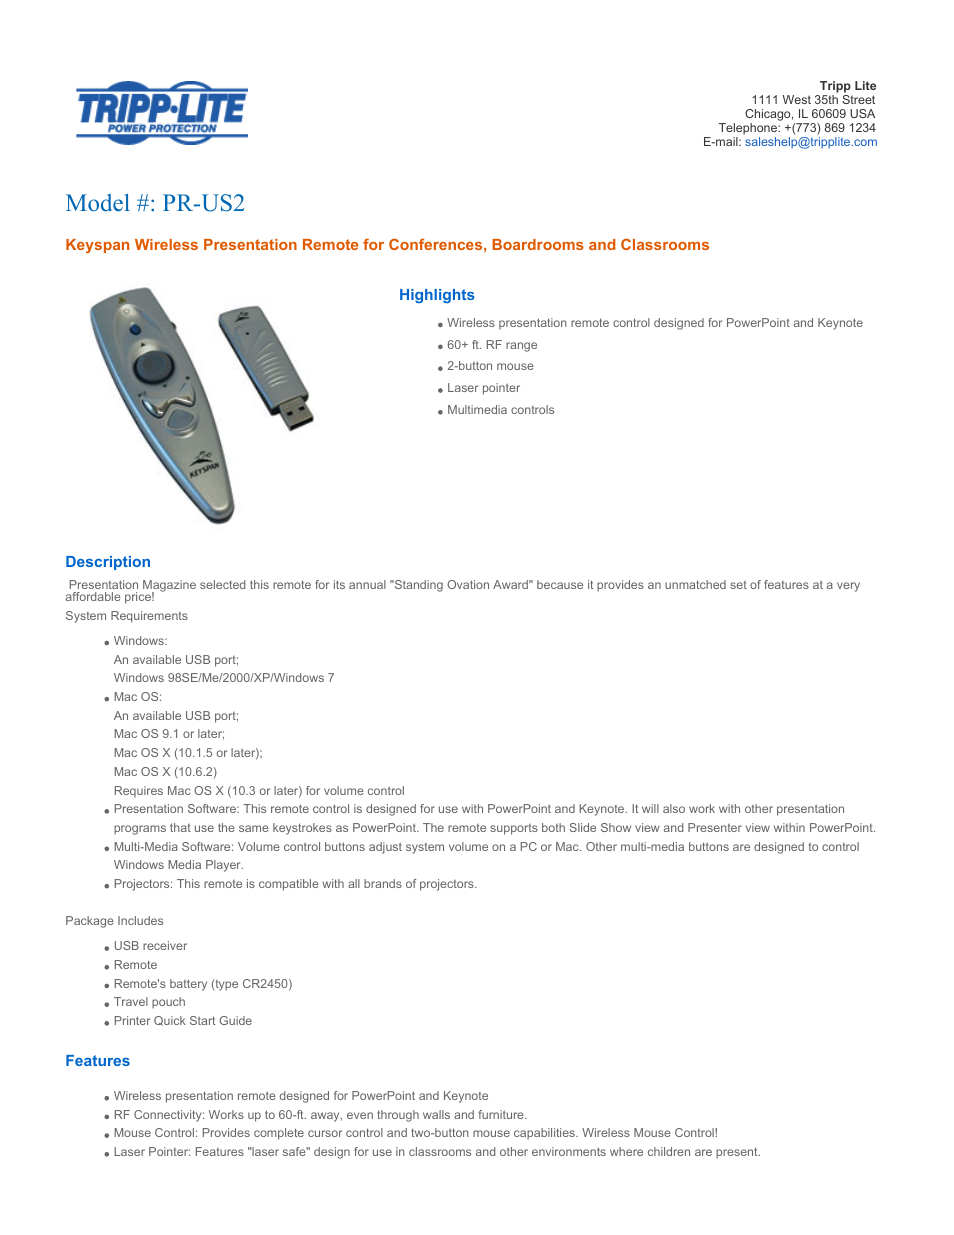 Tripp Lite Keyspan Wireless Presentation Remote PR-US2 User Manual